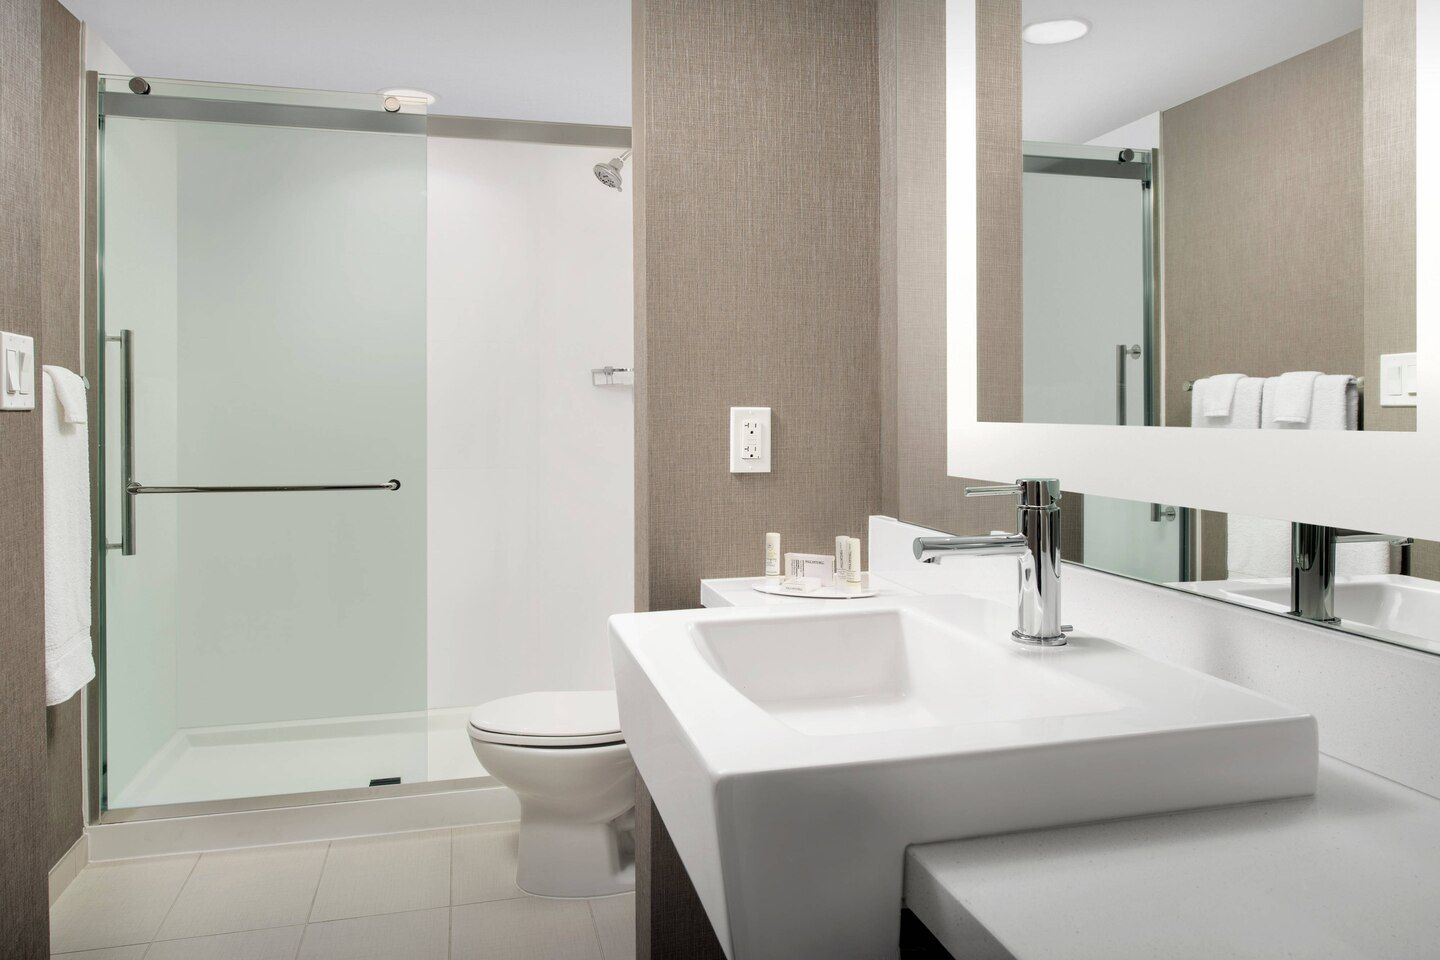 Springhill Suites Guest Bath Vanity & Shower Surrounds